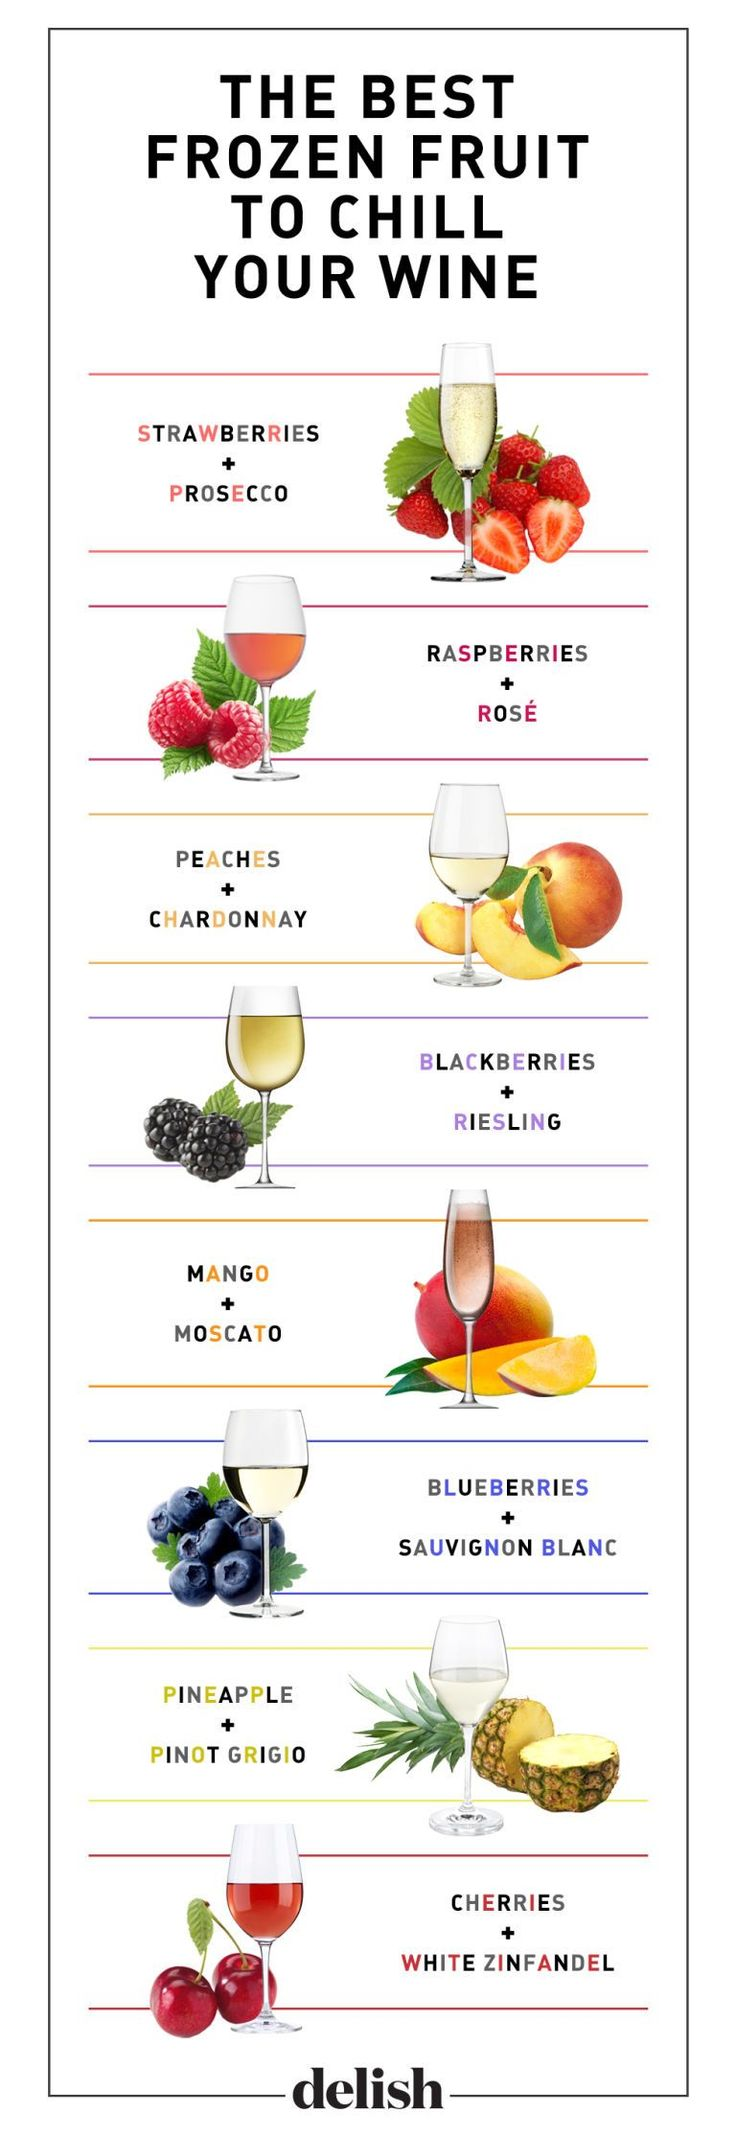 Frozen Fruit for Wine Chillers | House Beautiful AND Other amazing PARTY HACKS! #WineChiller